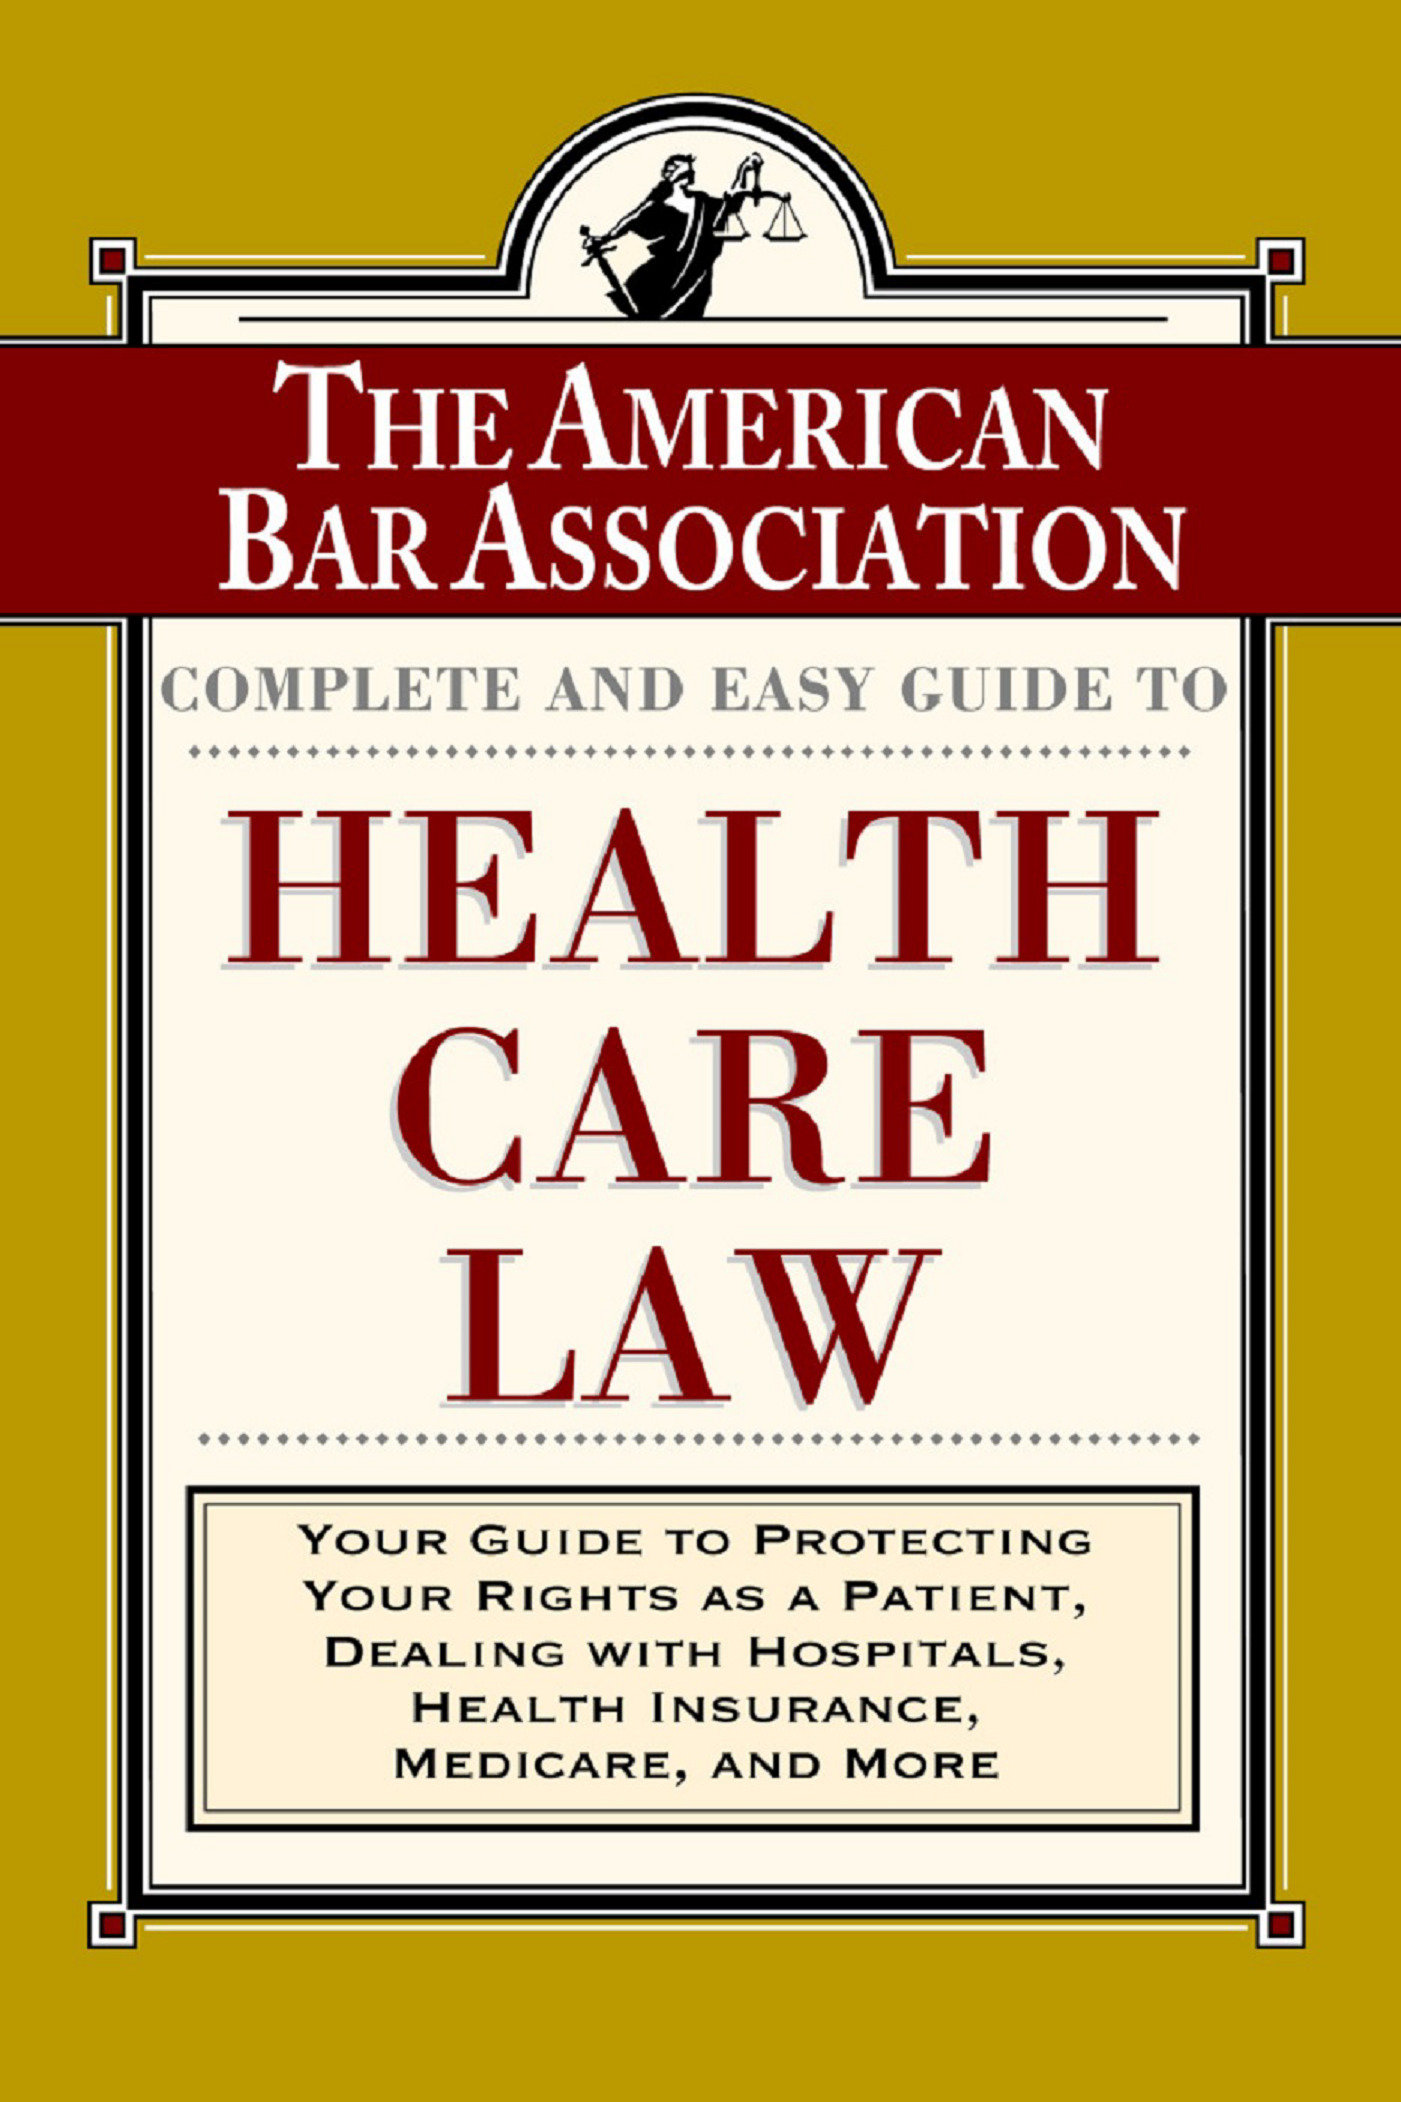 The ABA Complete and Easy Guide to Health Care Law Your Guide to Protecting Your Rights as a Patient, Dealing with Hospitals, Health Insurance, Medicare, and More